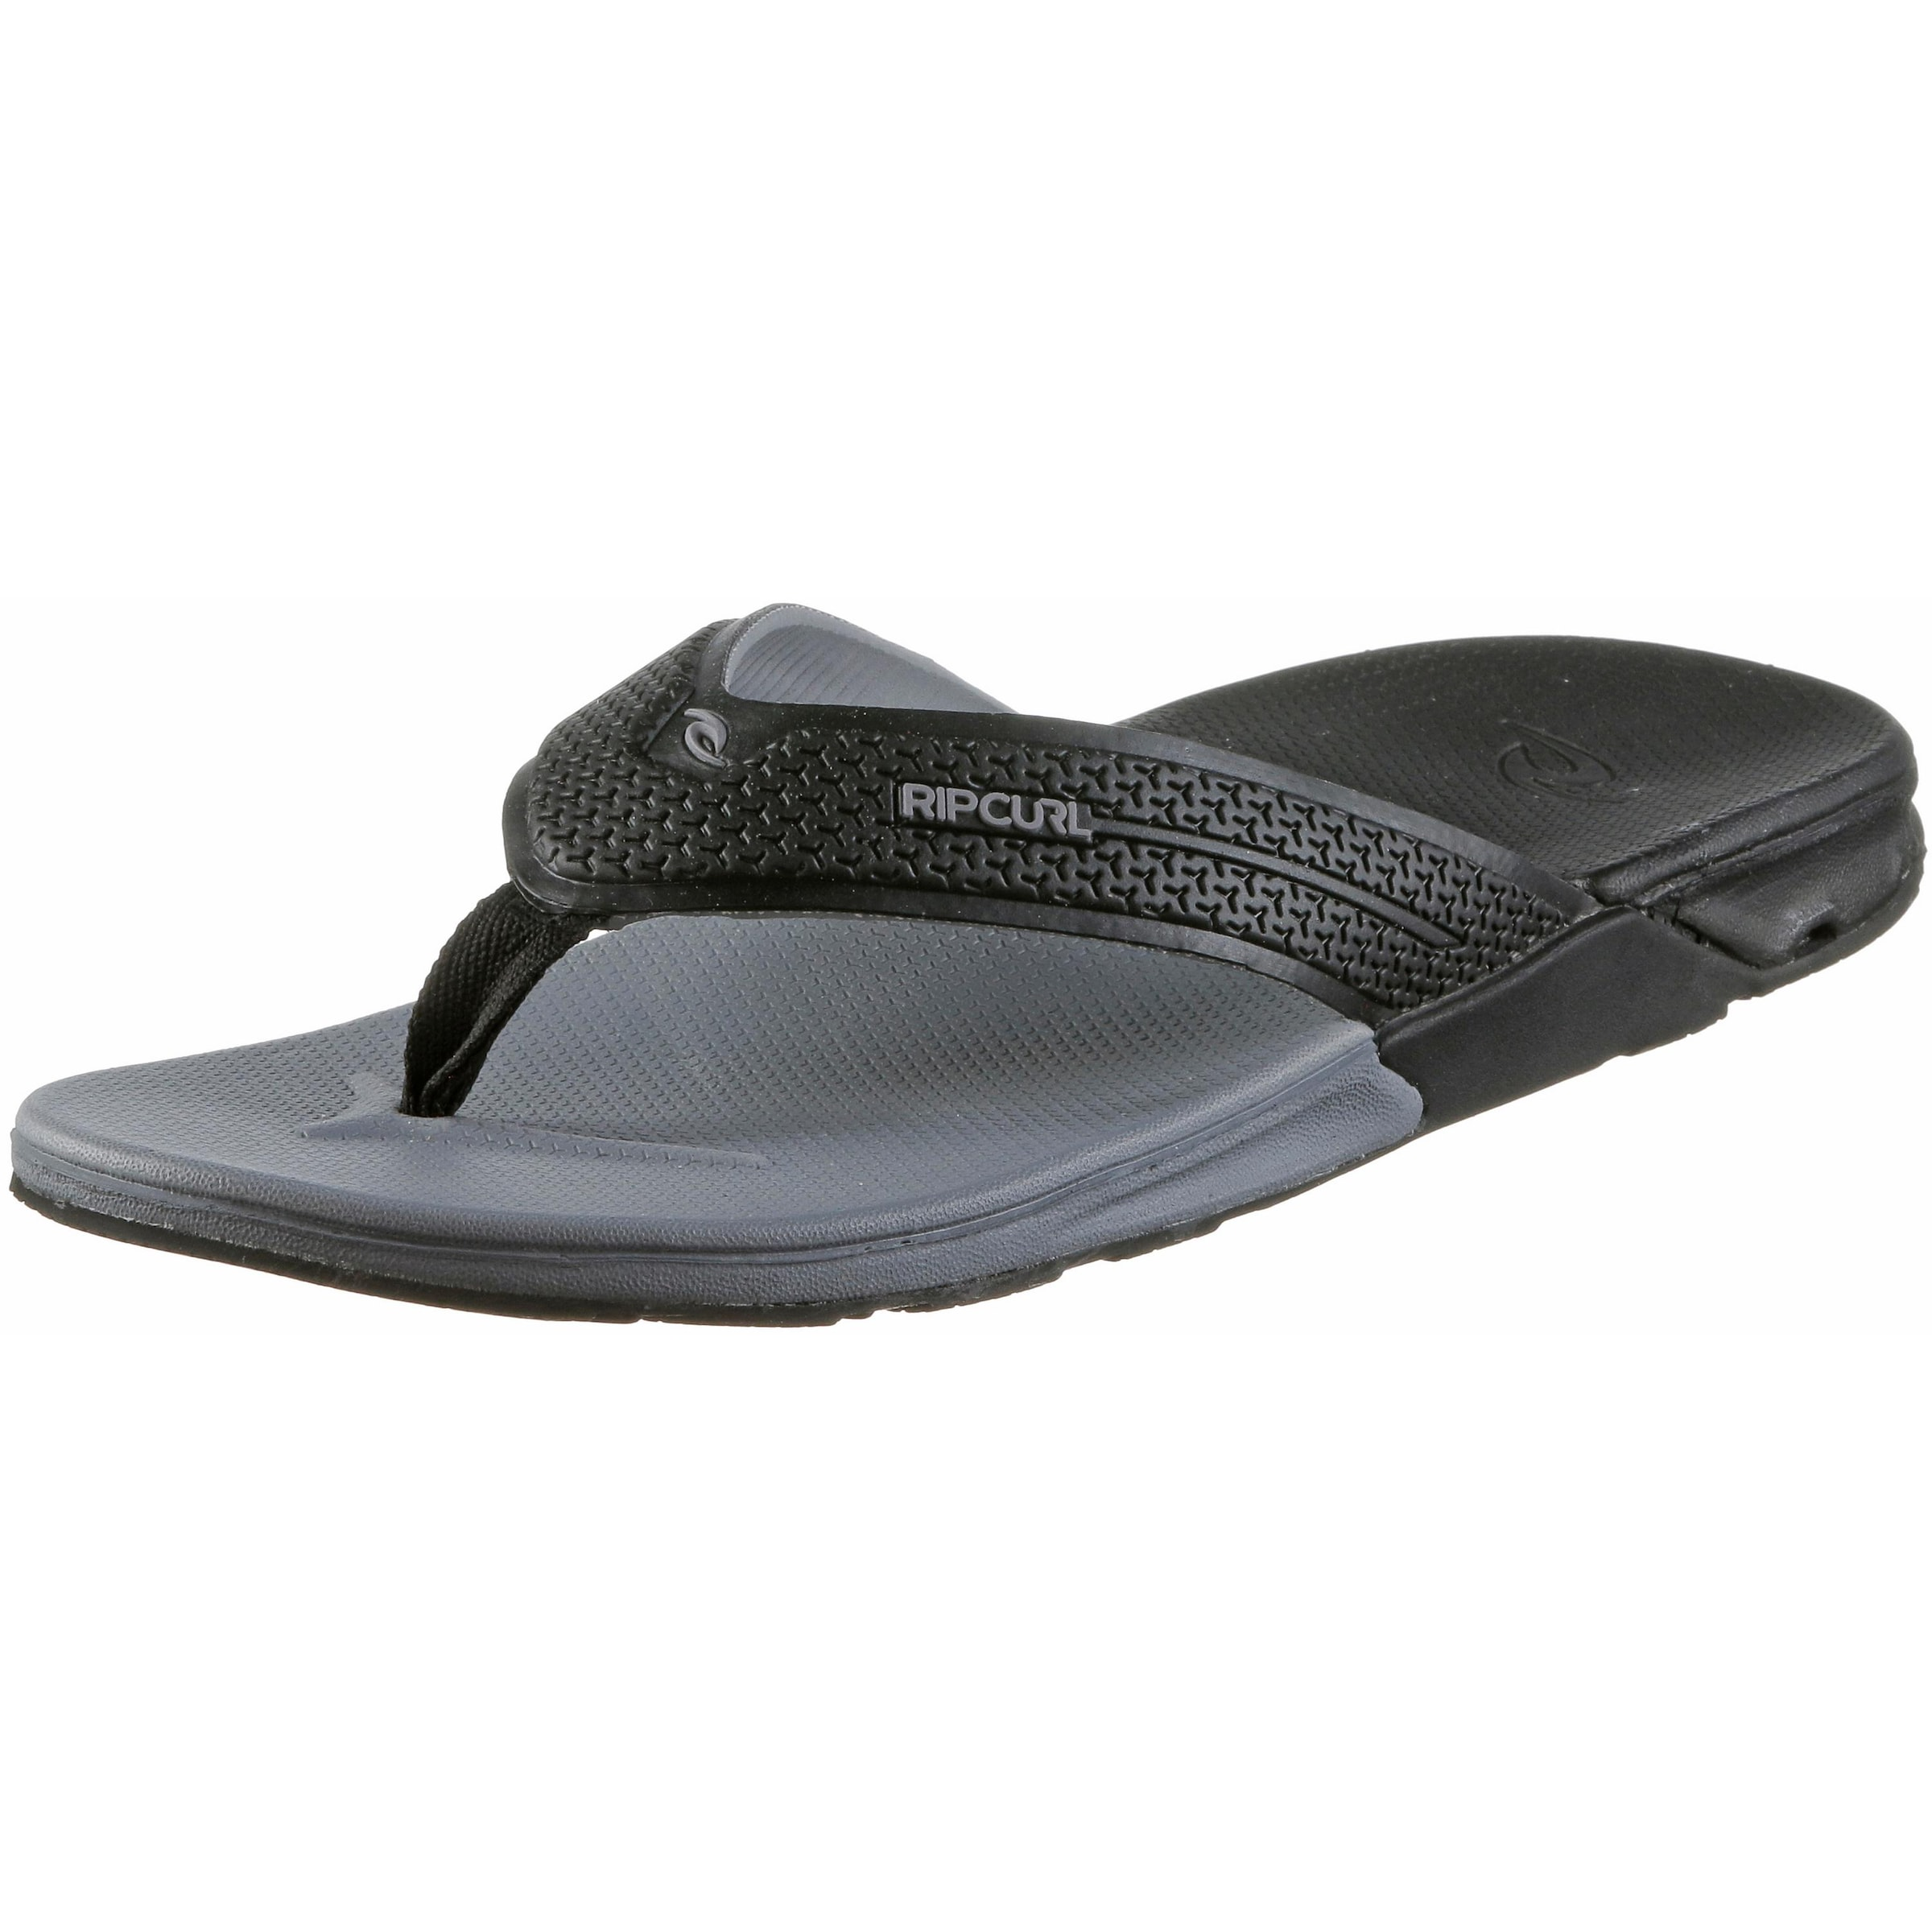 RIP CURL | Zehensandalen  THE GAME